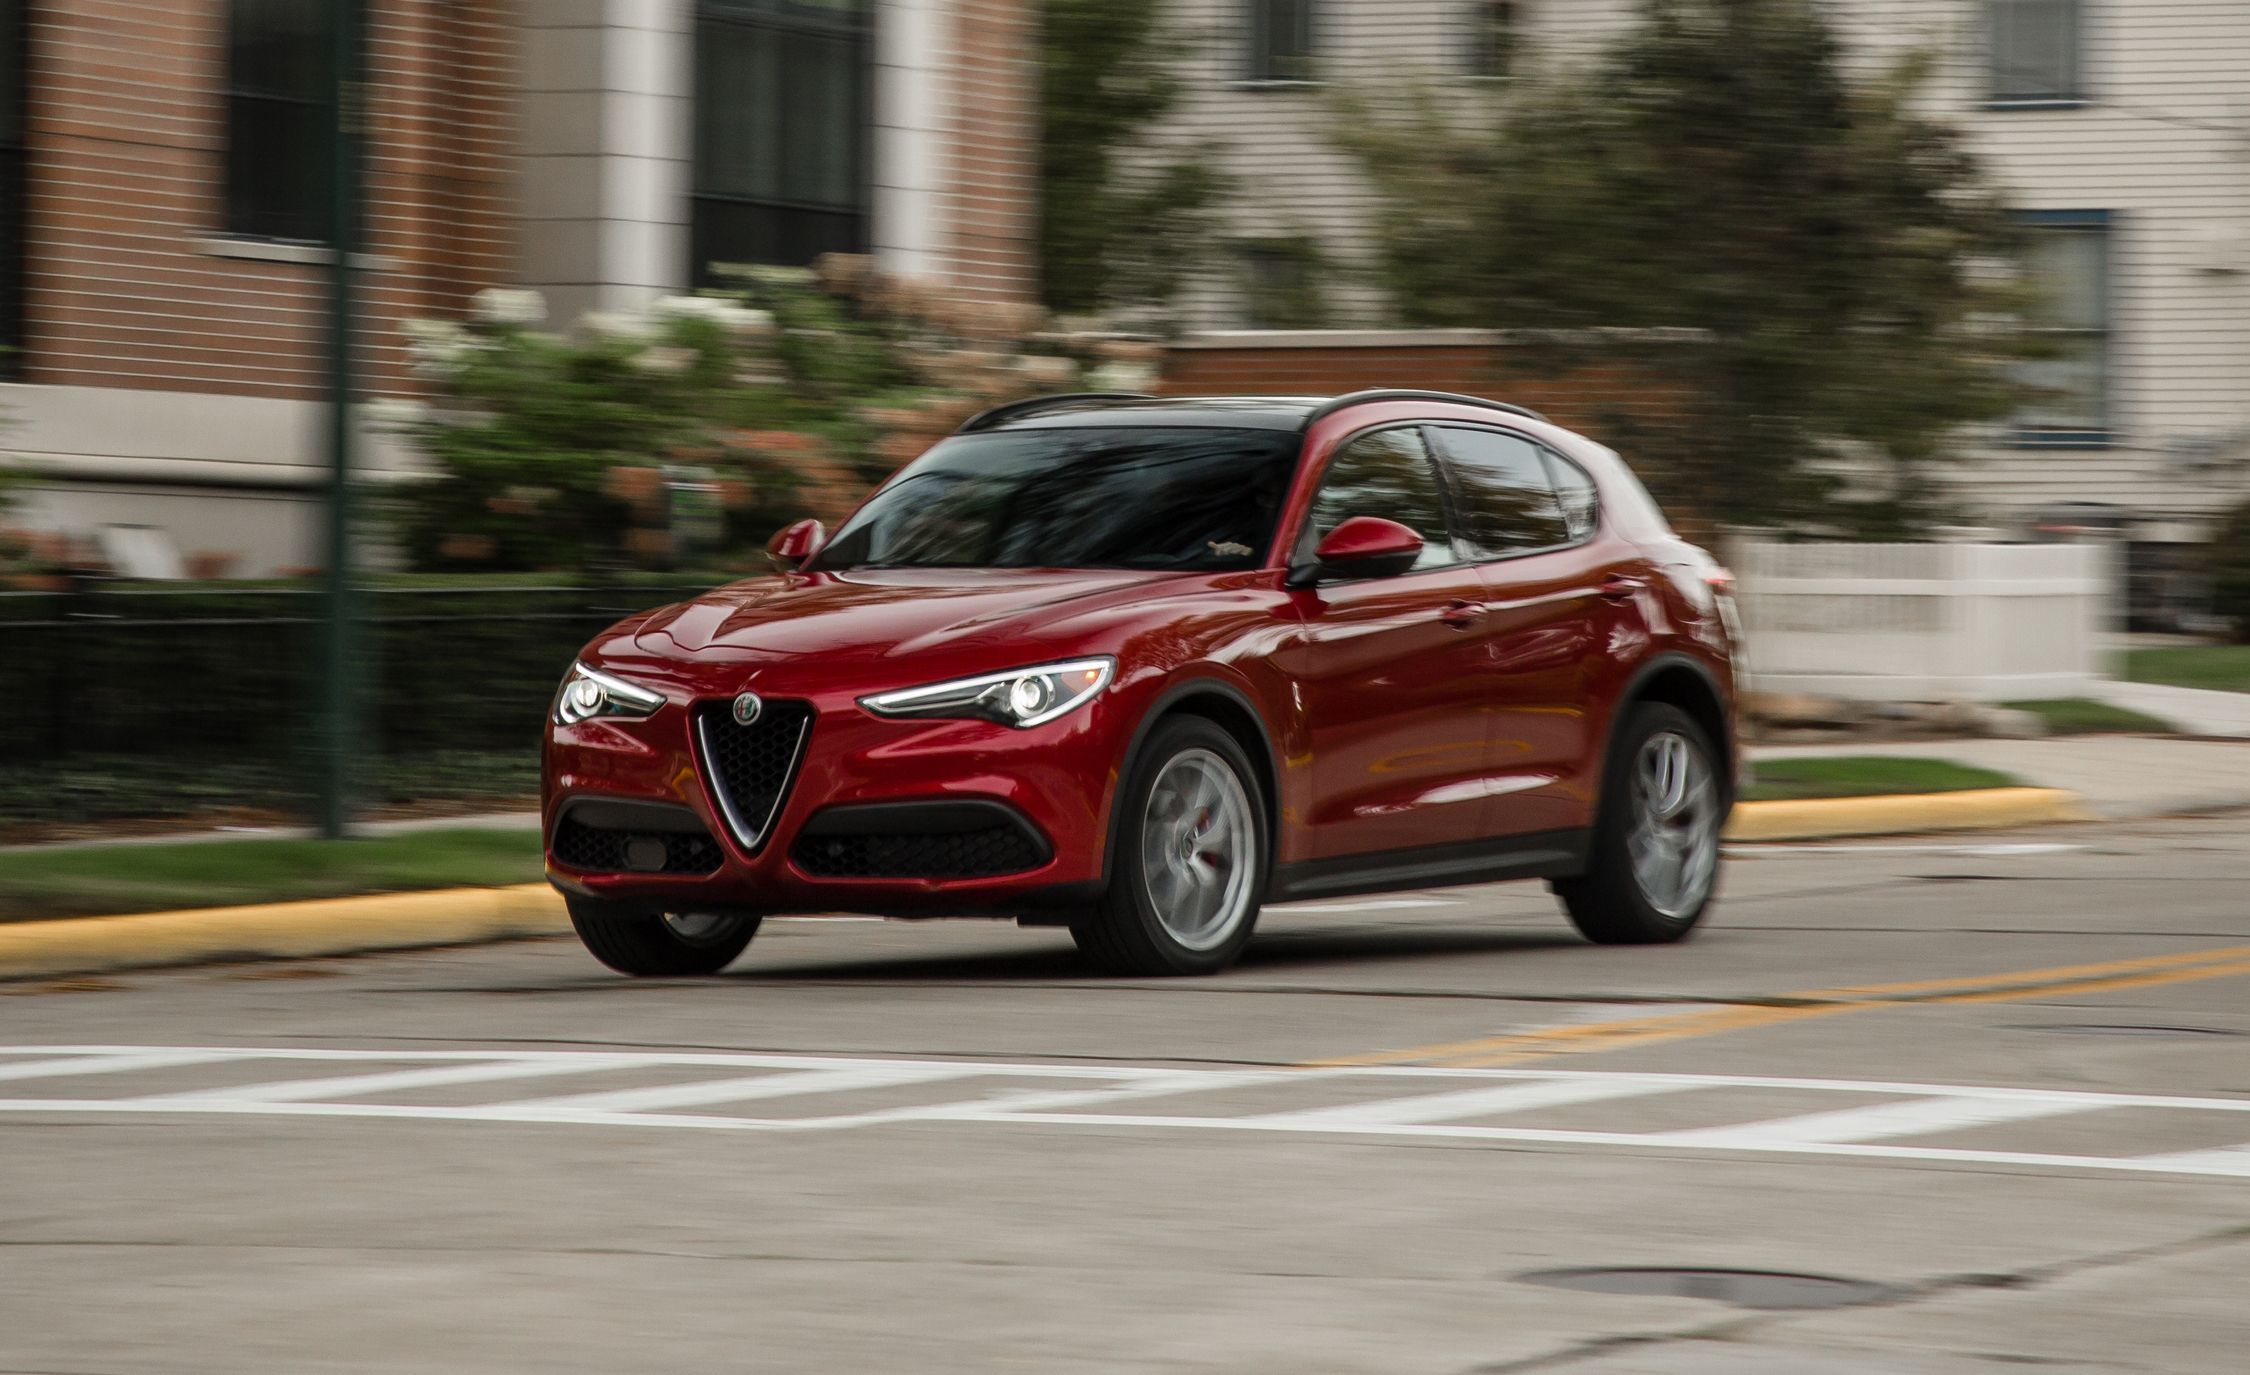 2019 alfa romeo stelvio reviews | alfa romeo stelvio price, photos